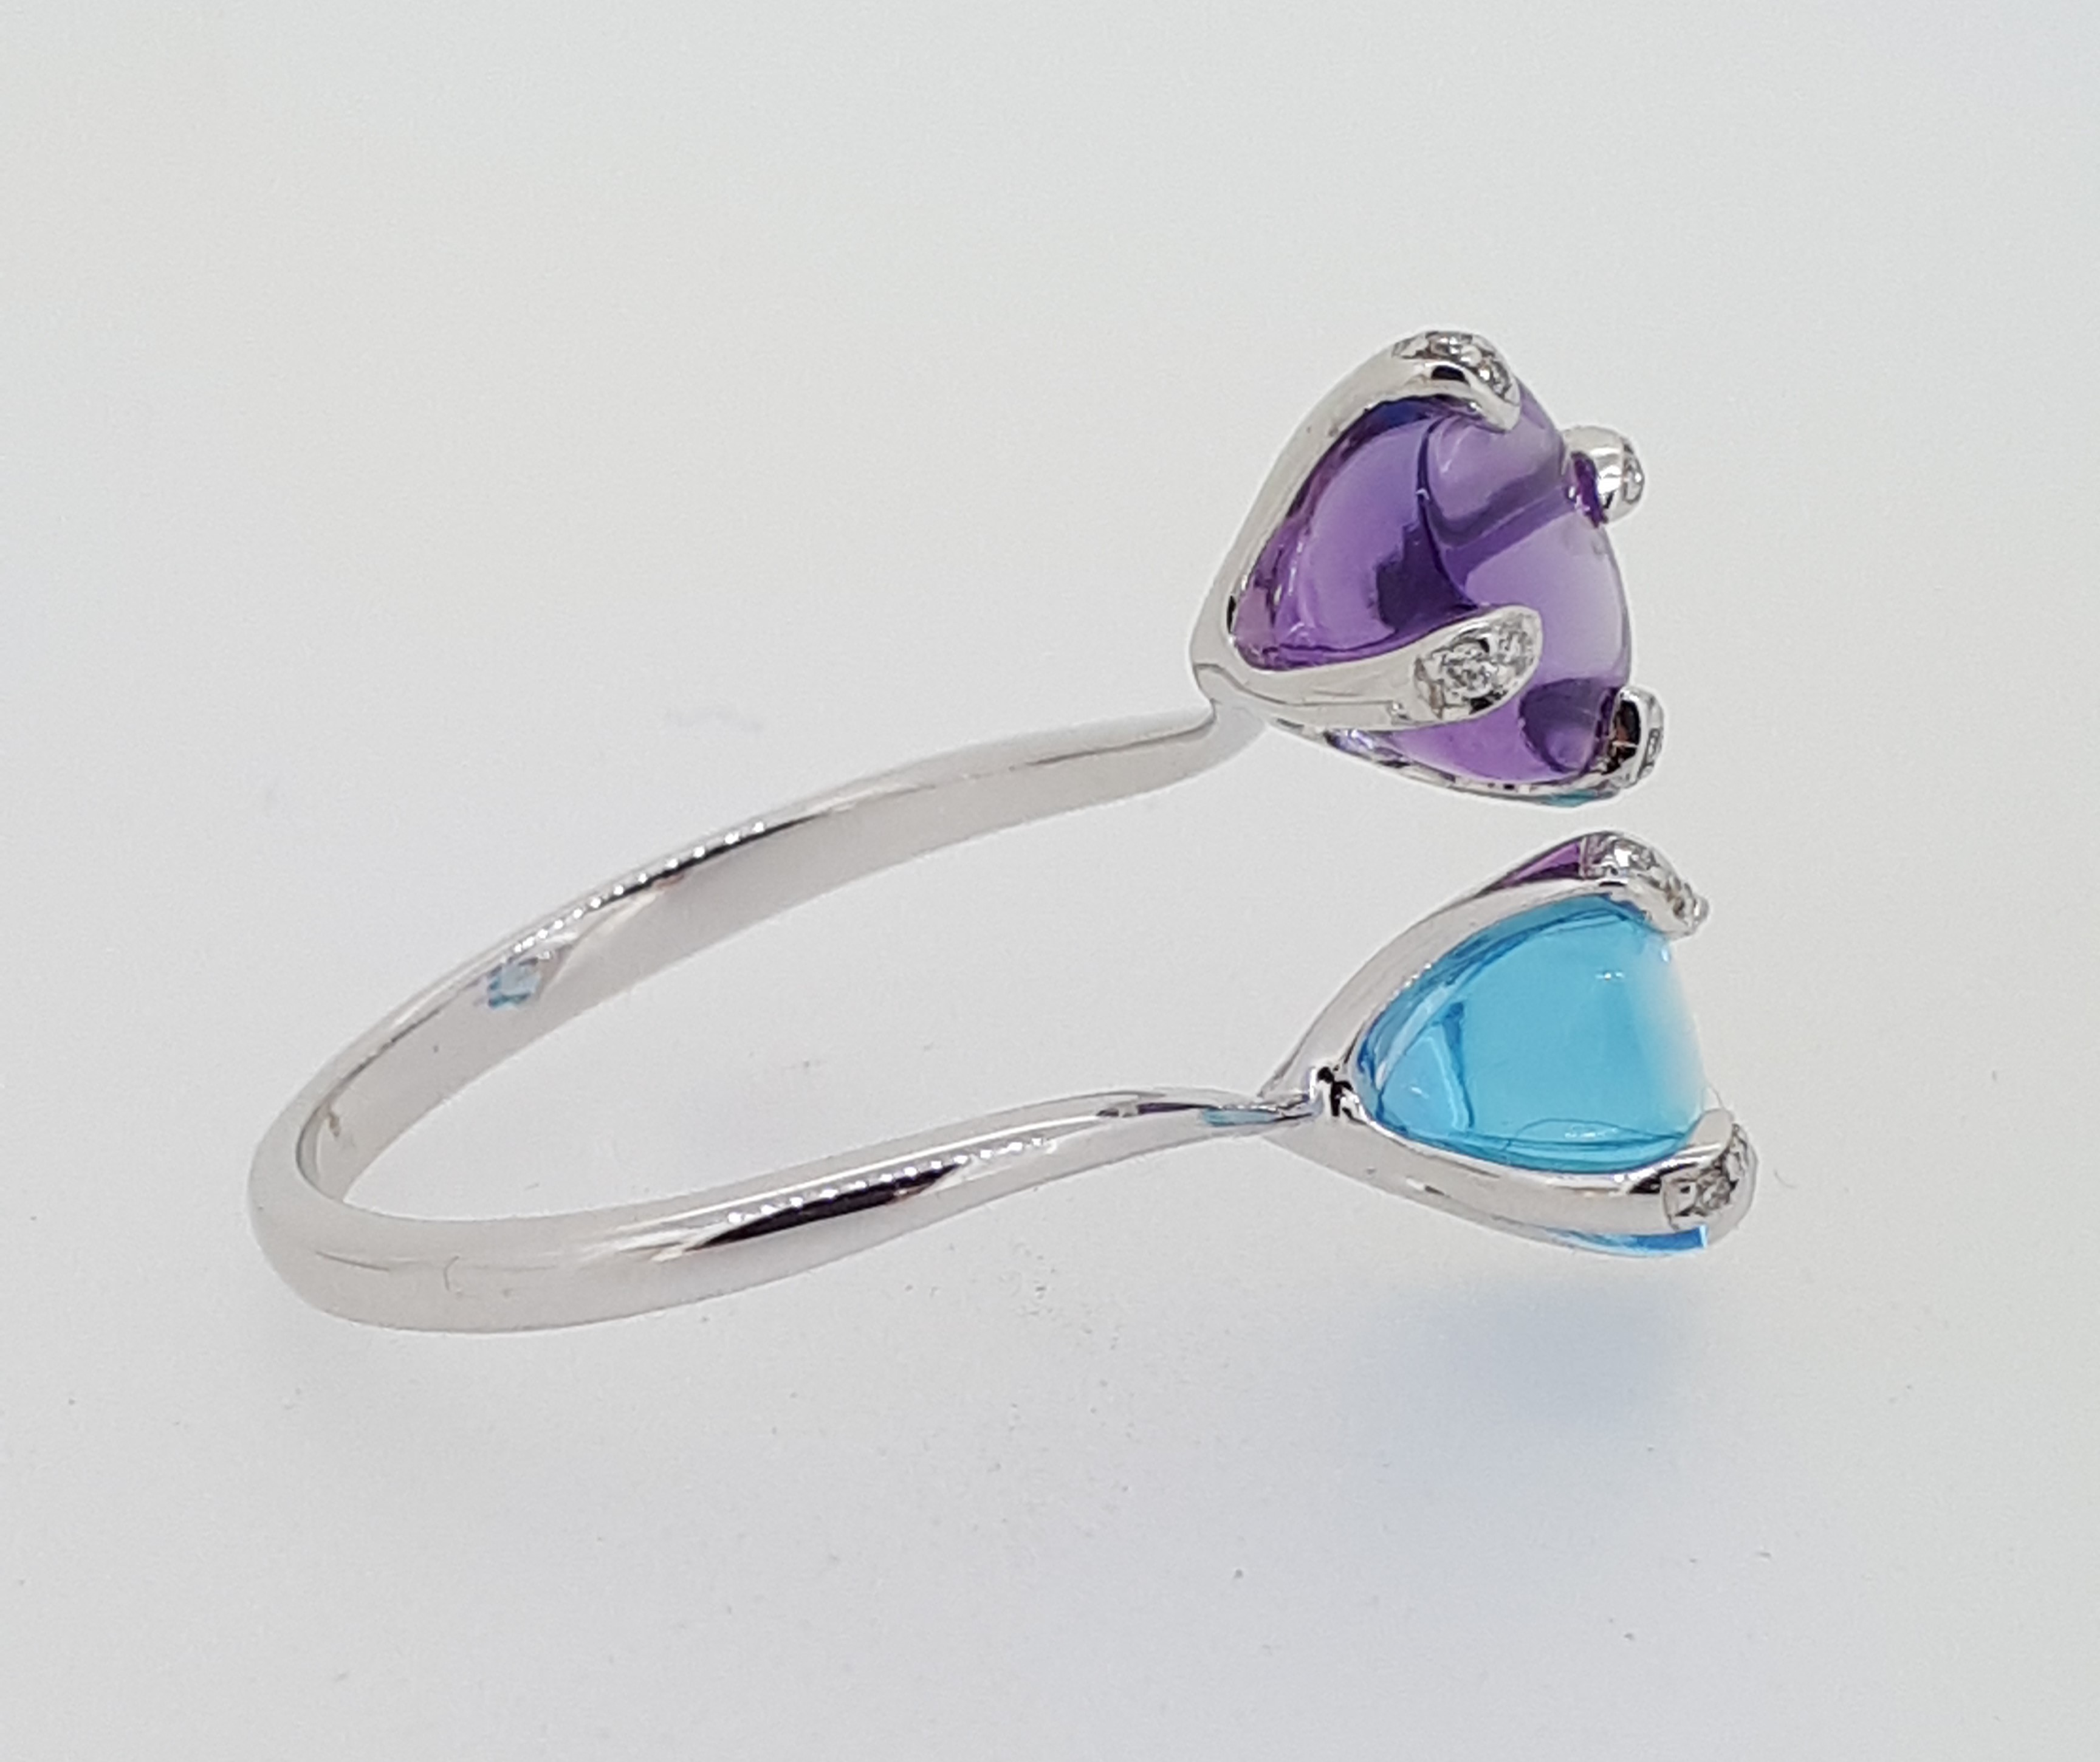 18ct (750) Topaz & Amethyst Crossover Ring with Diamond Claw Setting - Image 2 of 6